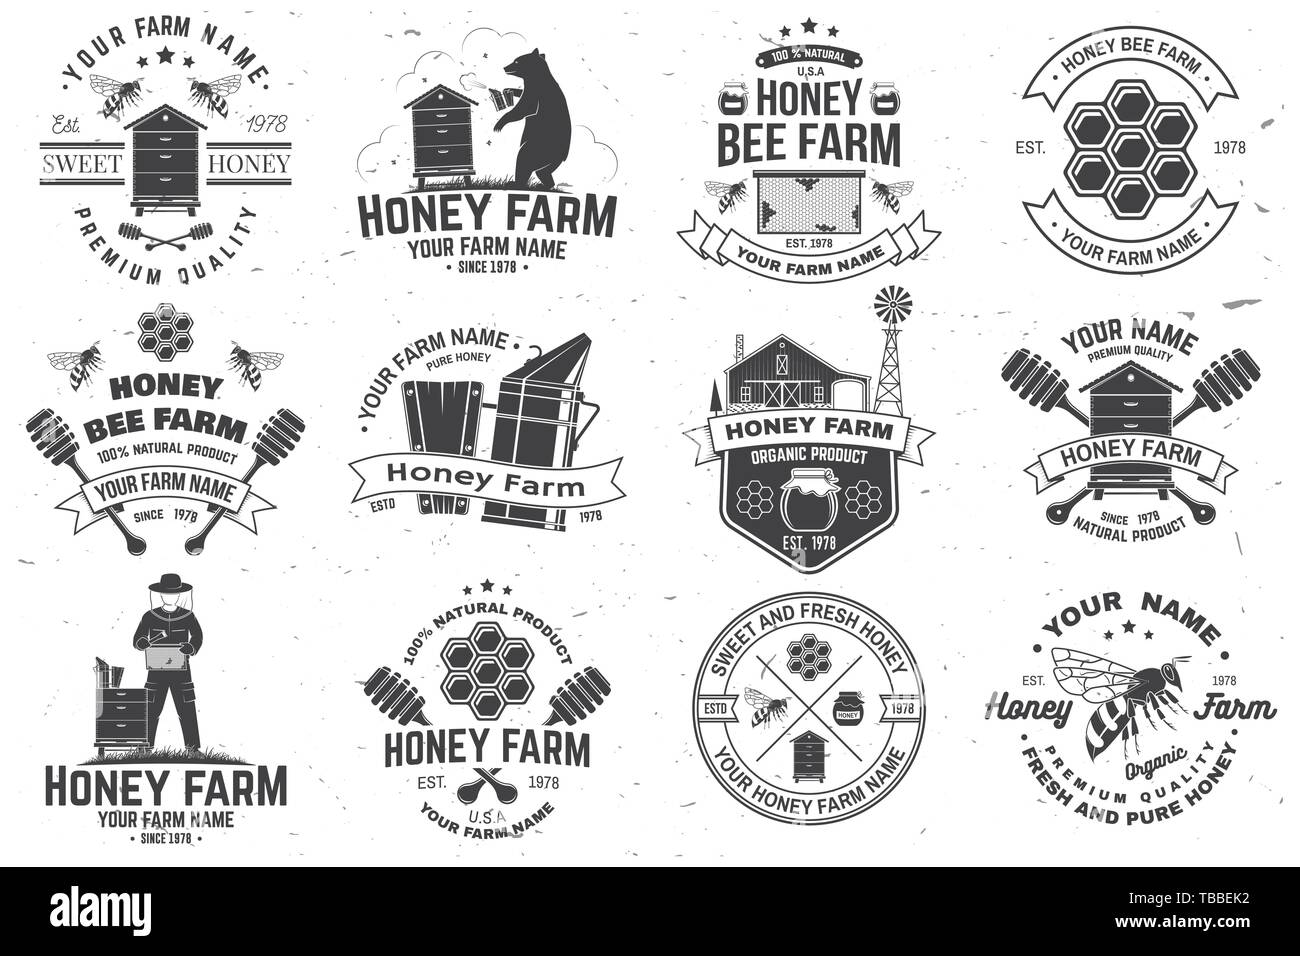 Set of Honey bee farm badge. Vector. Concept for shirt, print, stamp or tee. Vintage typography design with bee, honeycomb piece, hive and honey dipper silhouette. Design for honey bee farm business - Stock Image